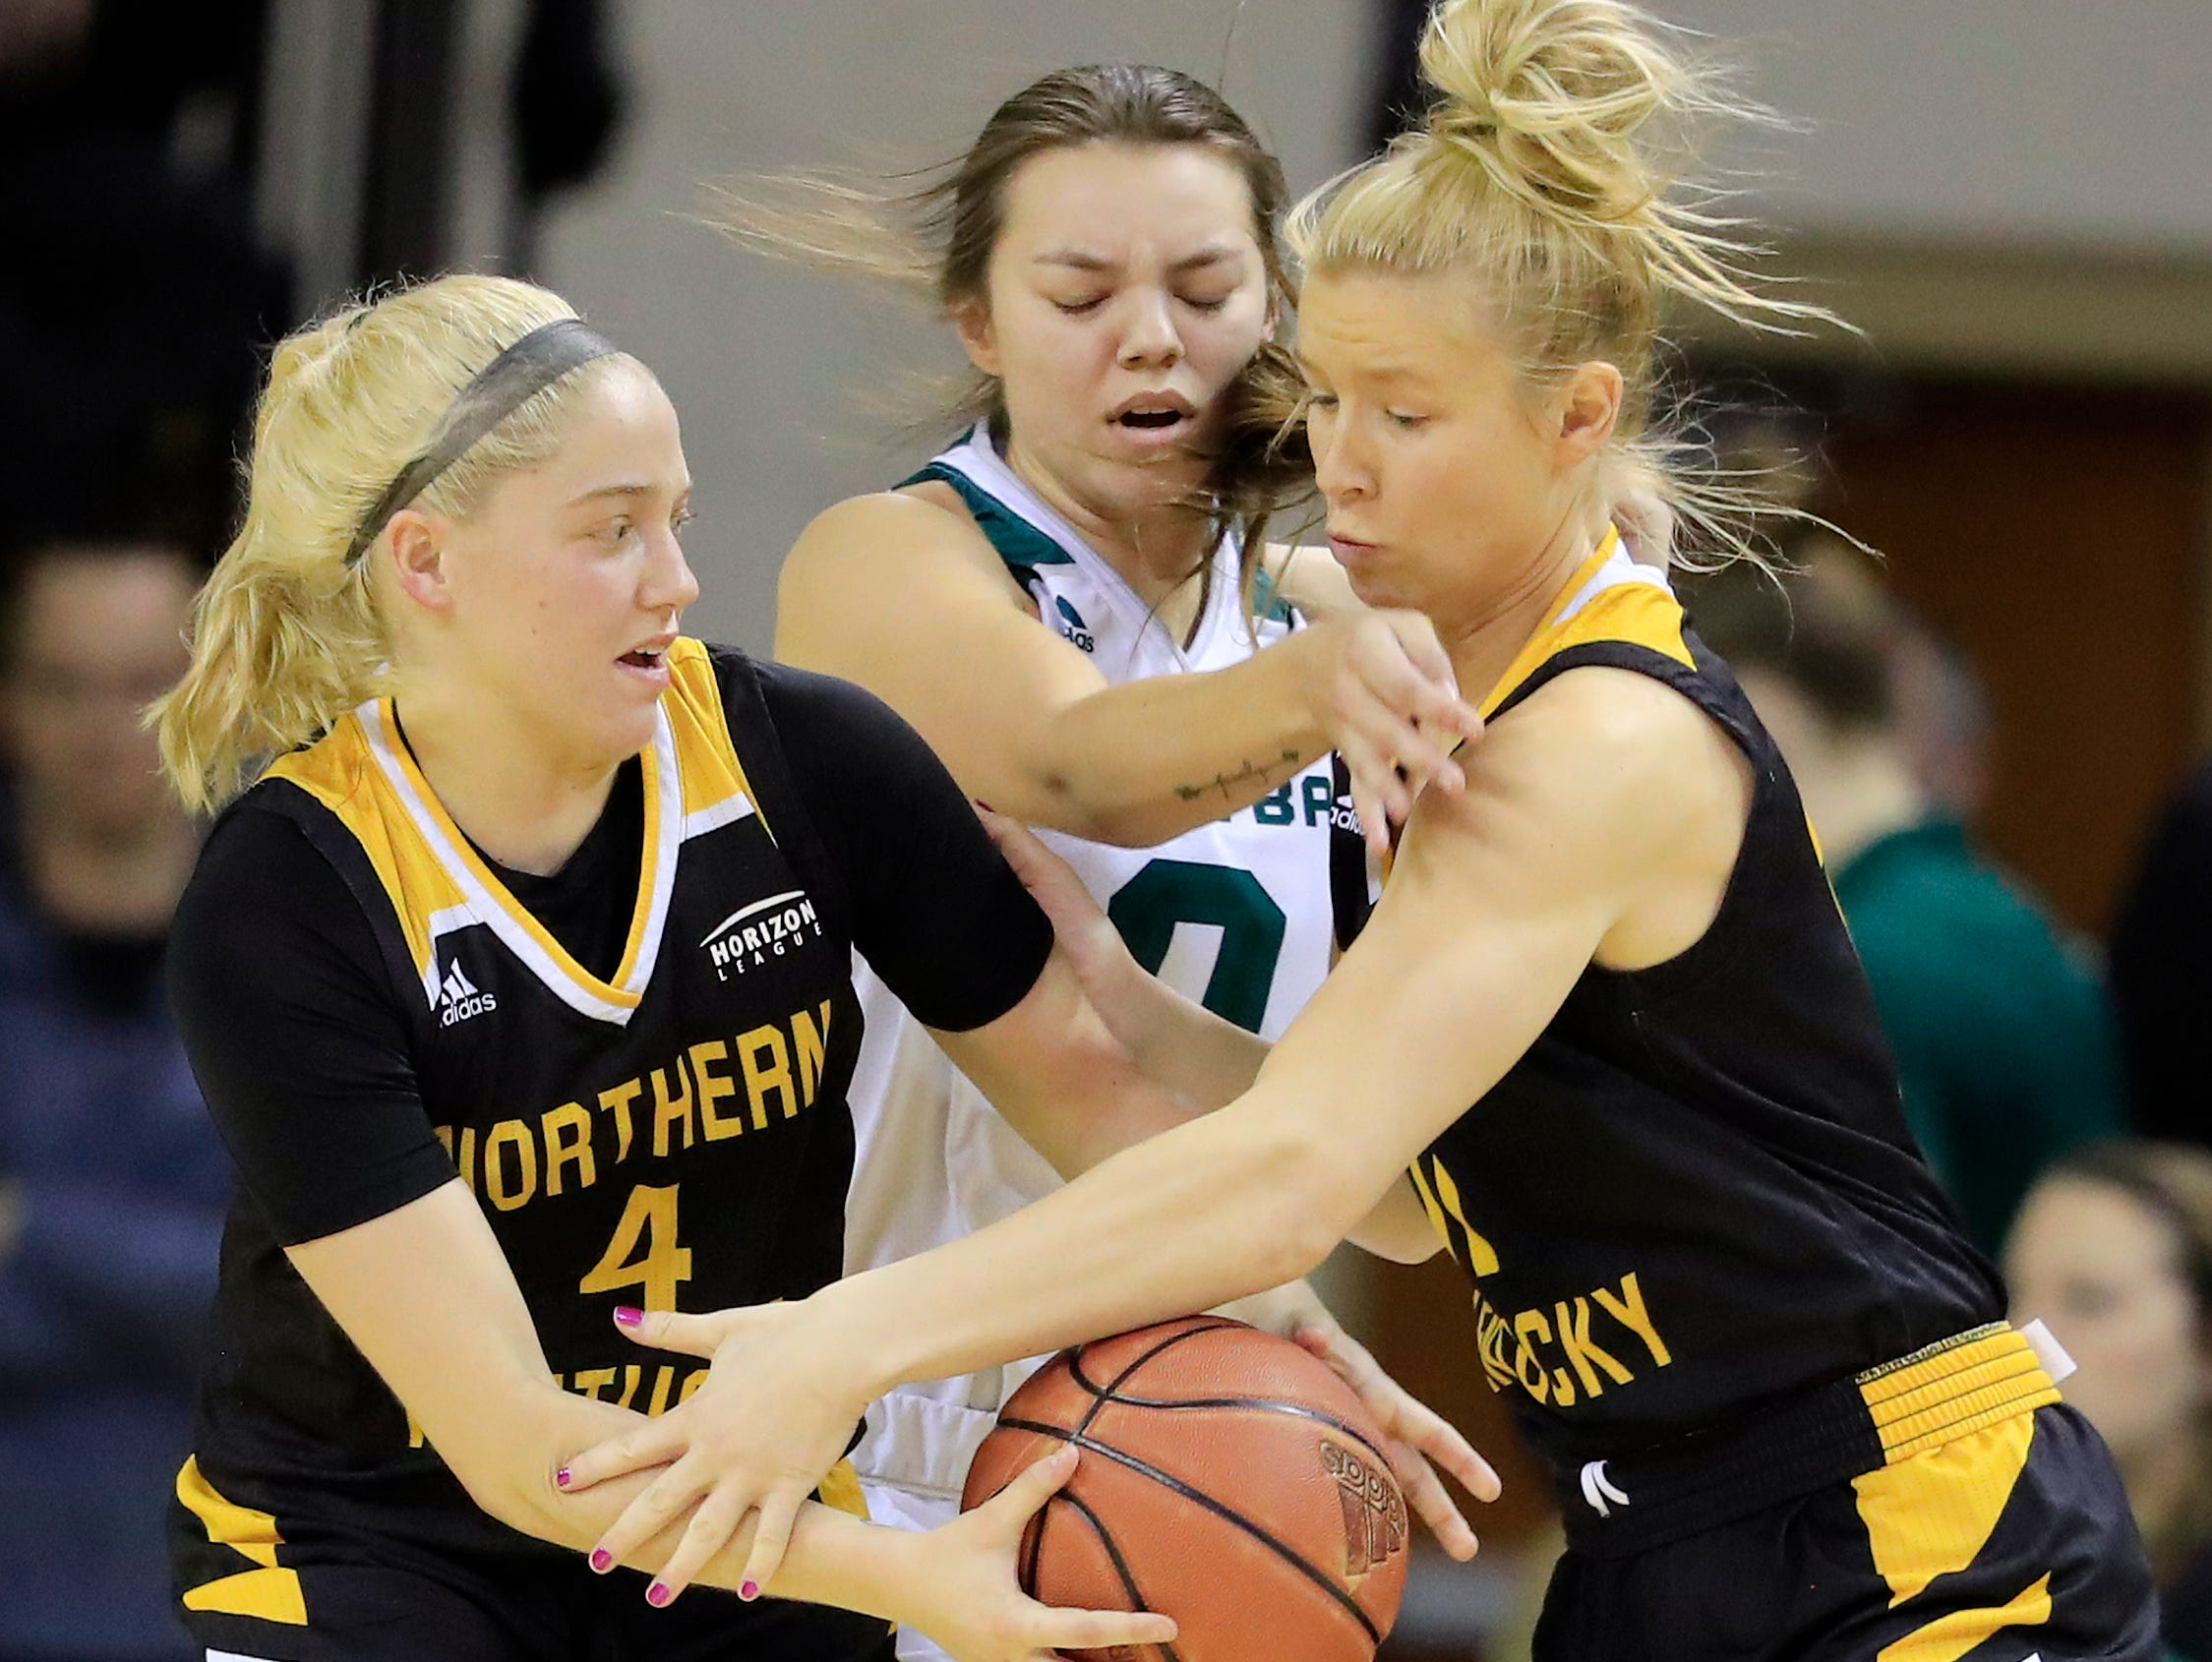 Northern Kentucky Norse guard Taryn Taugher (11) passes to guard Taylor Clos (4) against Green Bay Phoenix guard Hailey Oskey (0) in a Horizon League women's basketball game at the Kress Center on Thursday, February 7, 2019 in Green Bay, Wis.